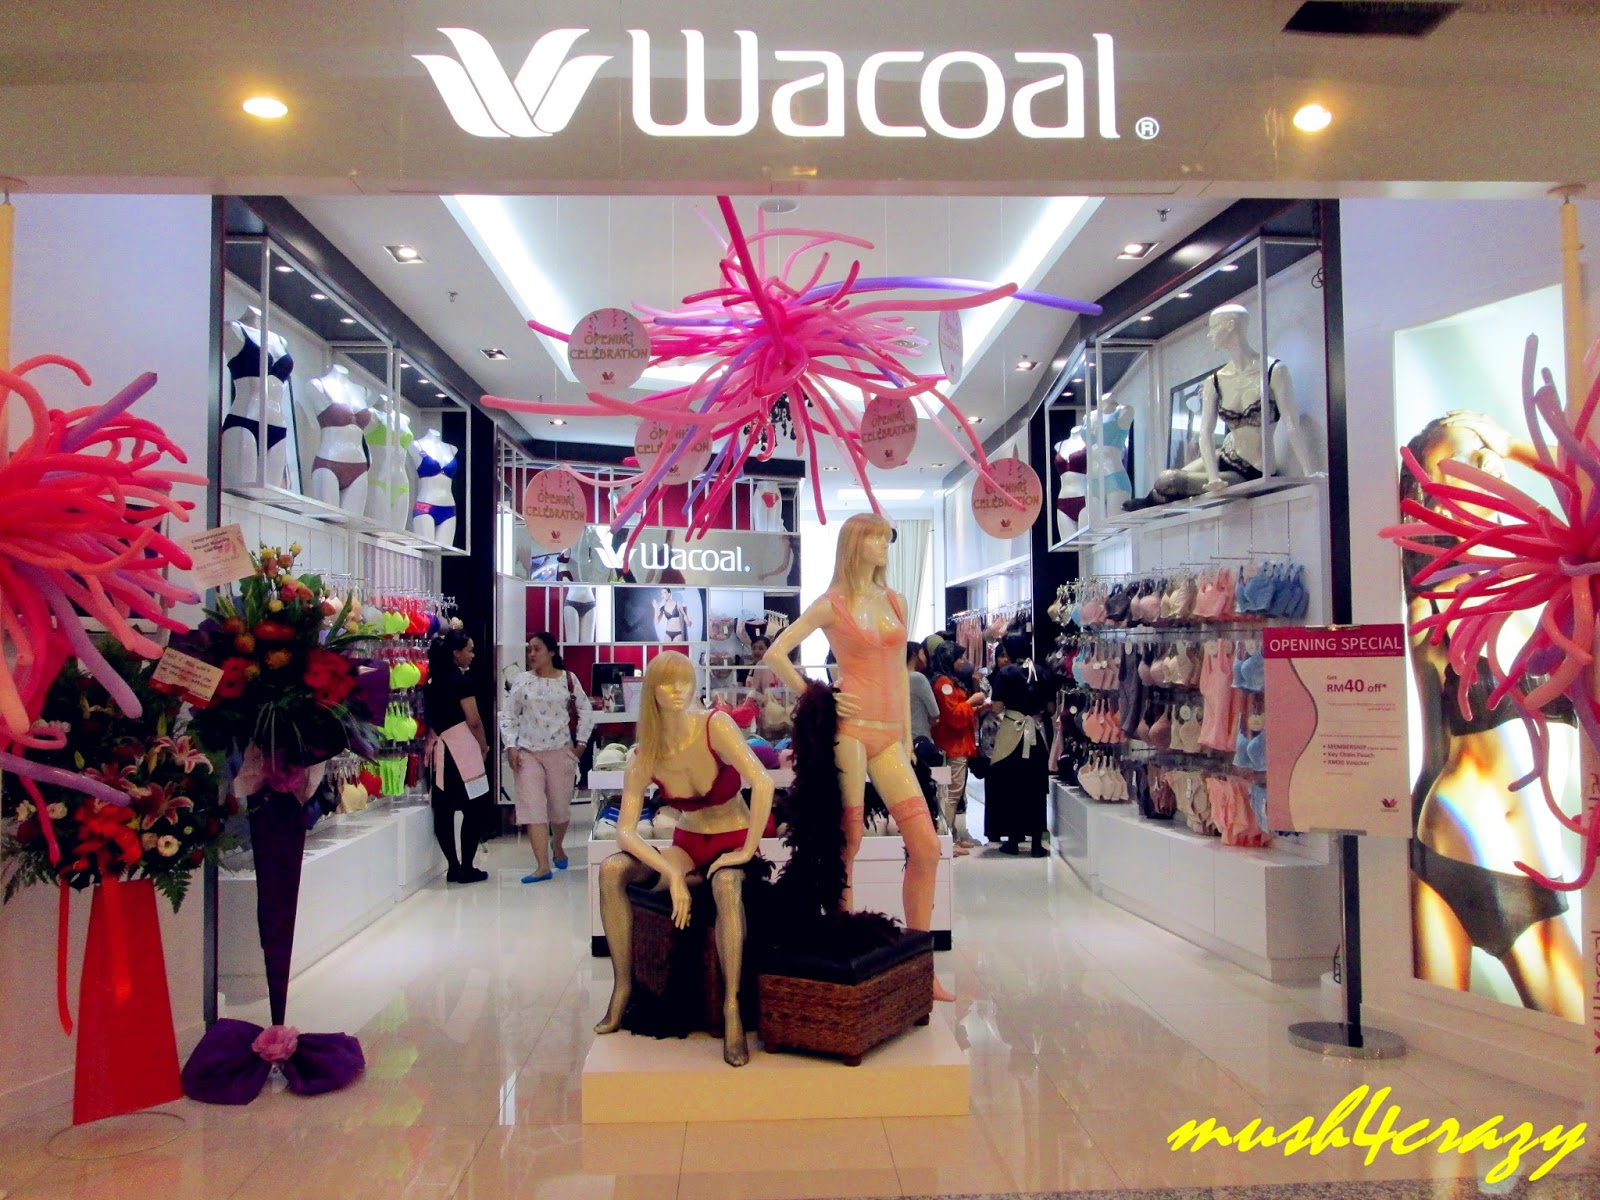 Wacoal Experience the extraordinary fit, comfort and quality that Wacoal intimate apparel provides. Come in for a complimentary bra fitting and personalized intimate apparel makeover in the new store in The Mall at Short Hills.